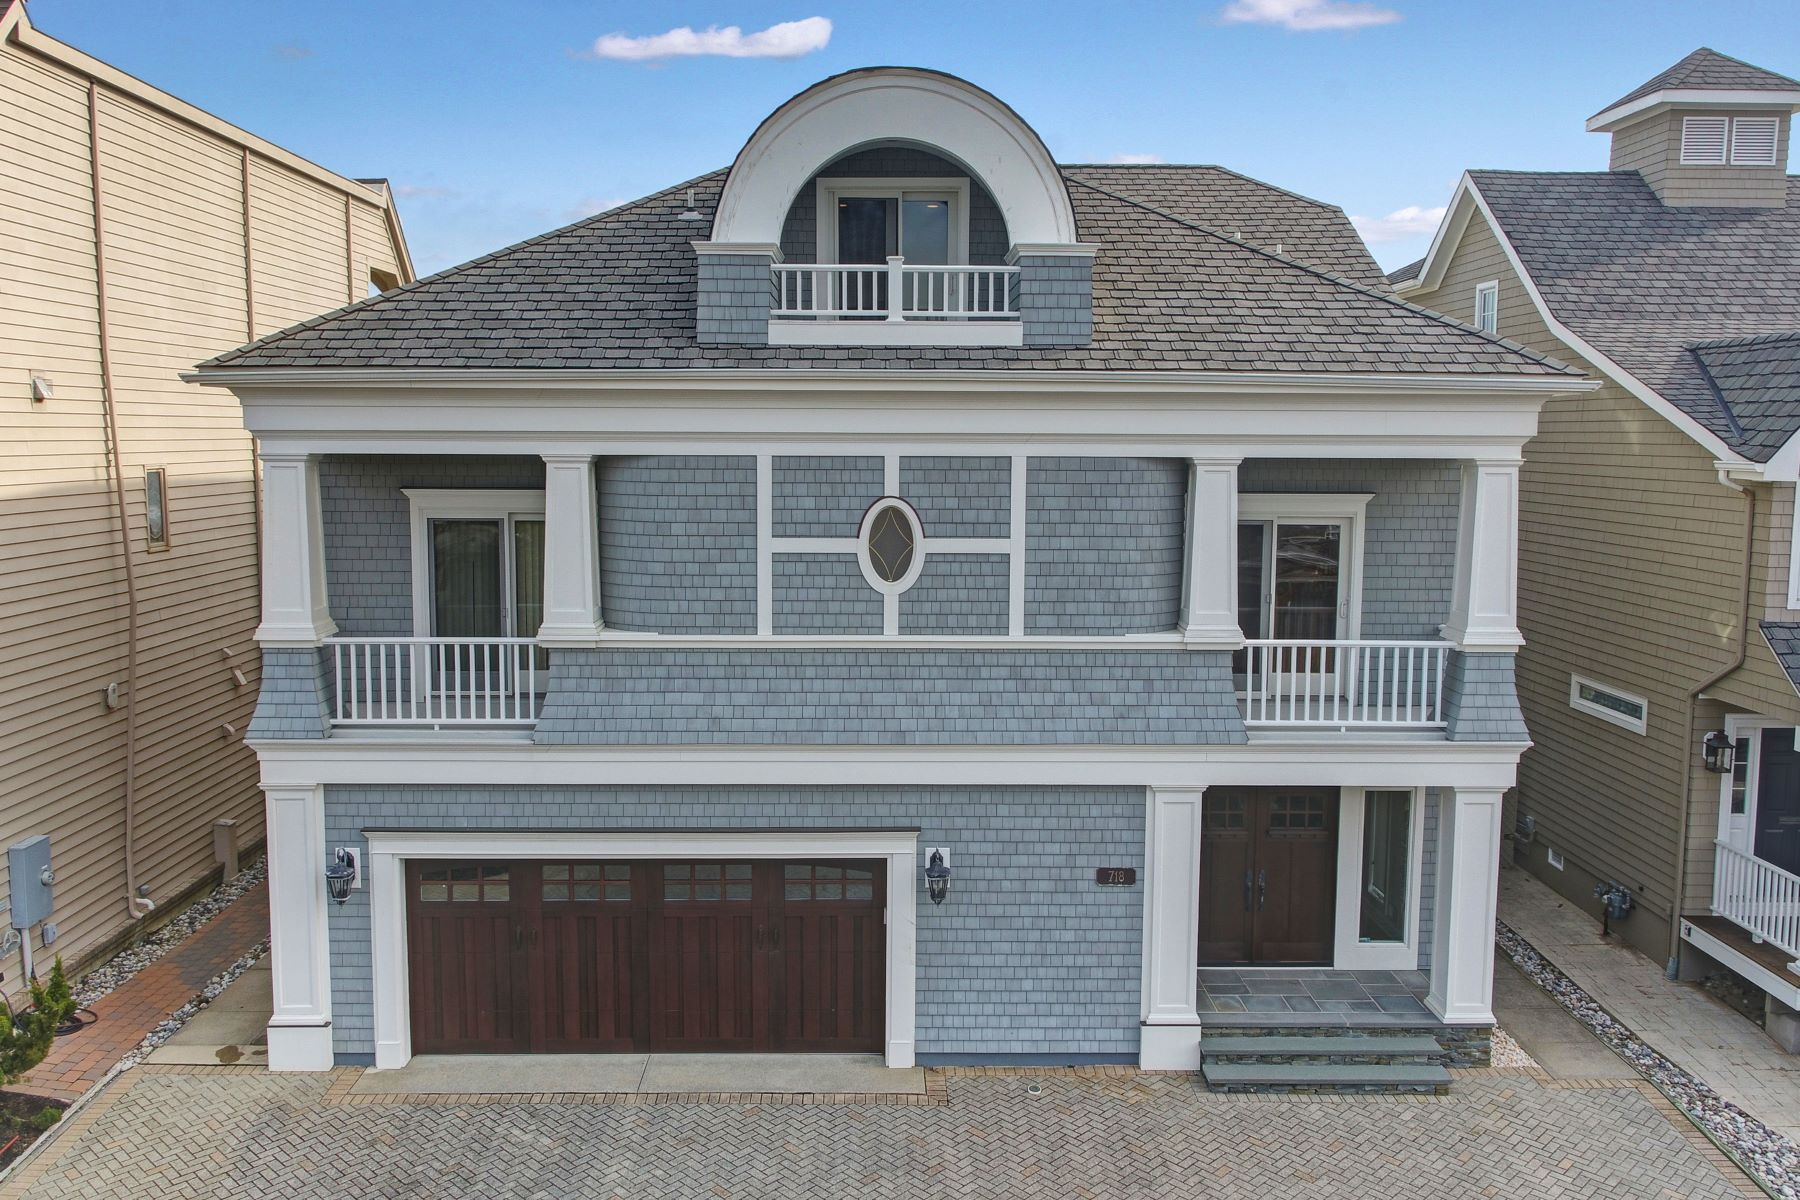 Single Family Homes for Rent at Summer Rental for the Month of July 2020 718 Morven Terrace, Sea Girt, New Jersey 08750 United States